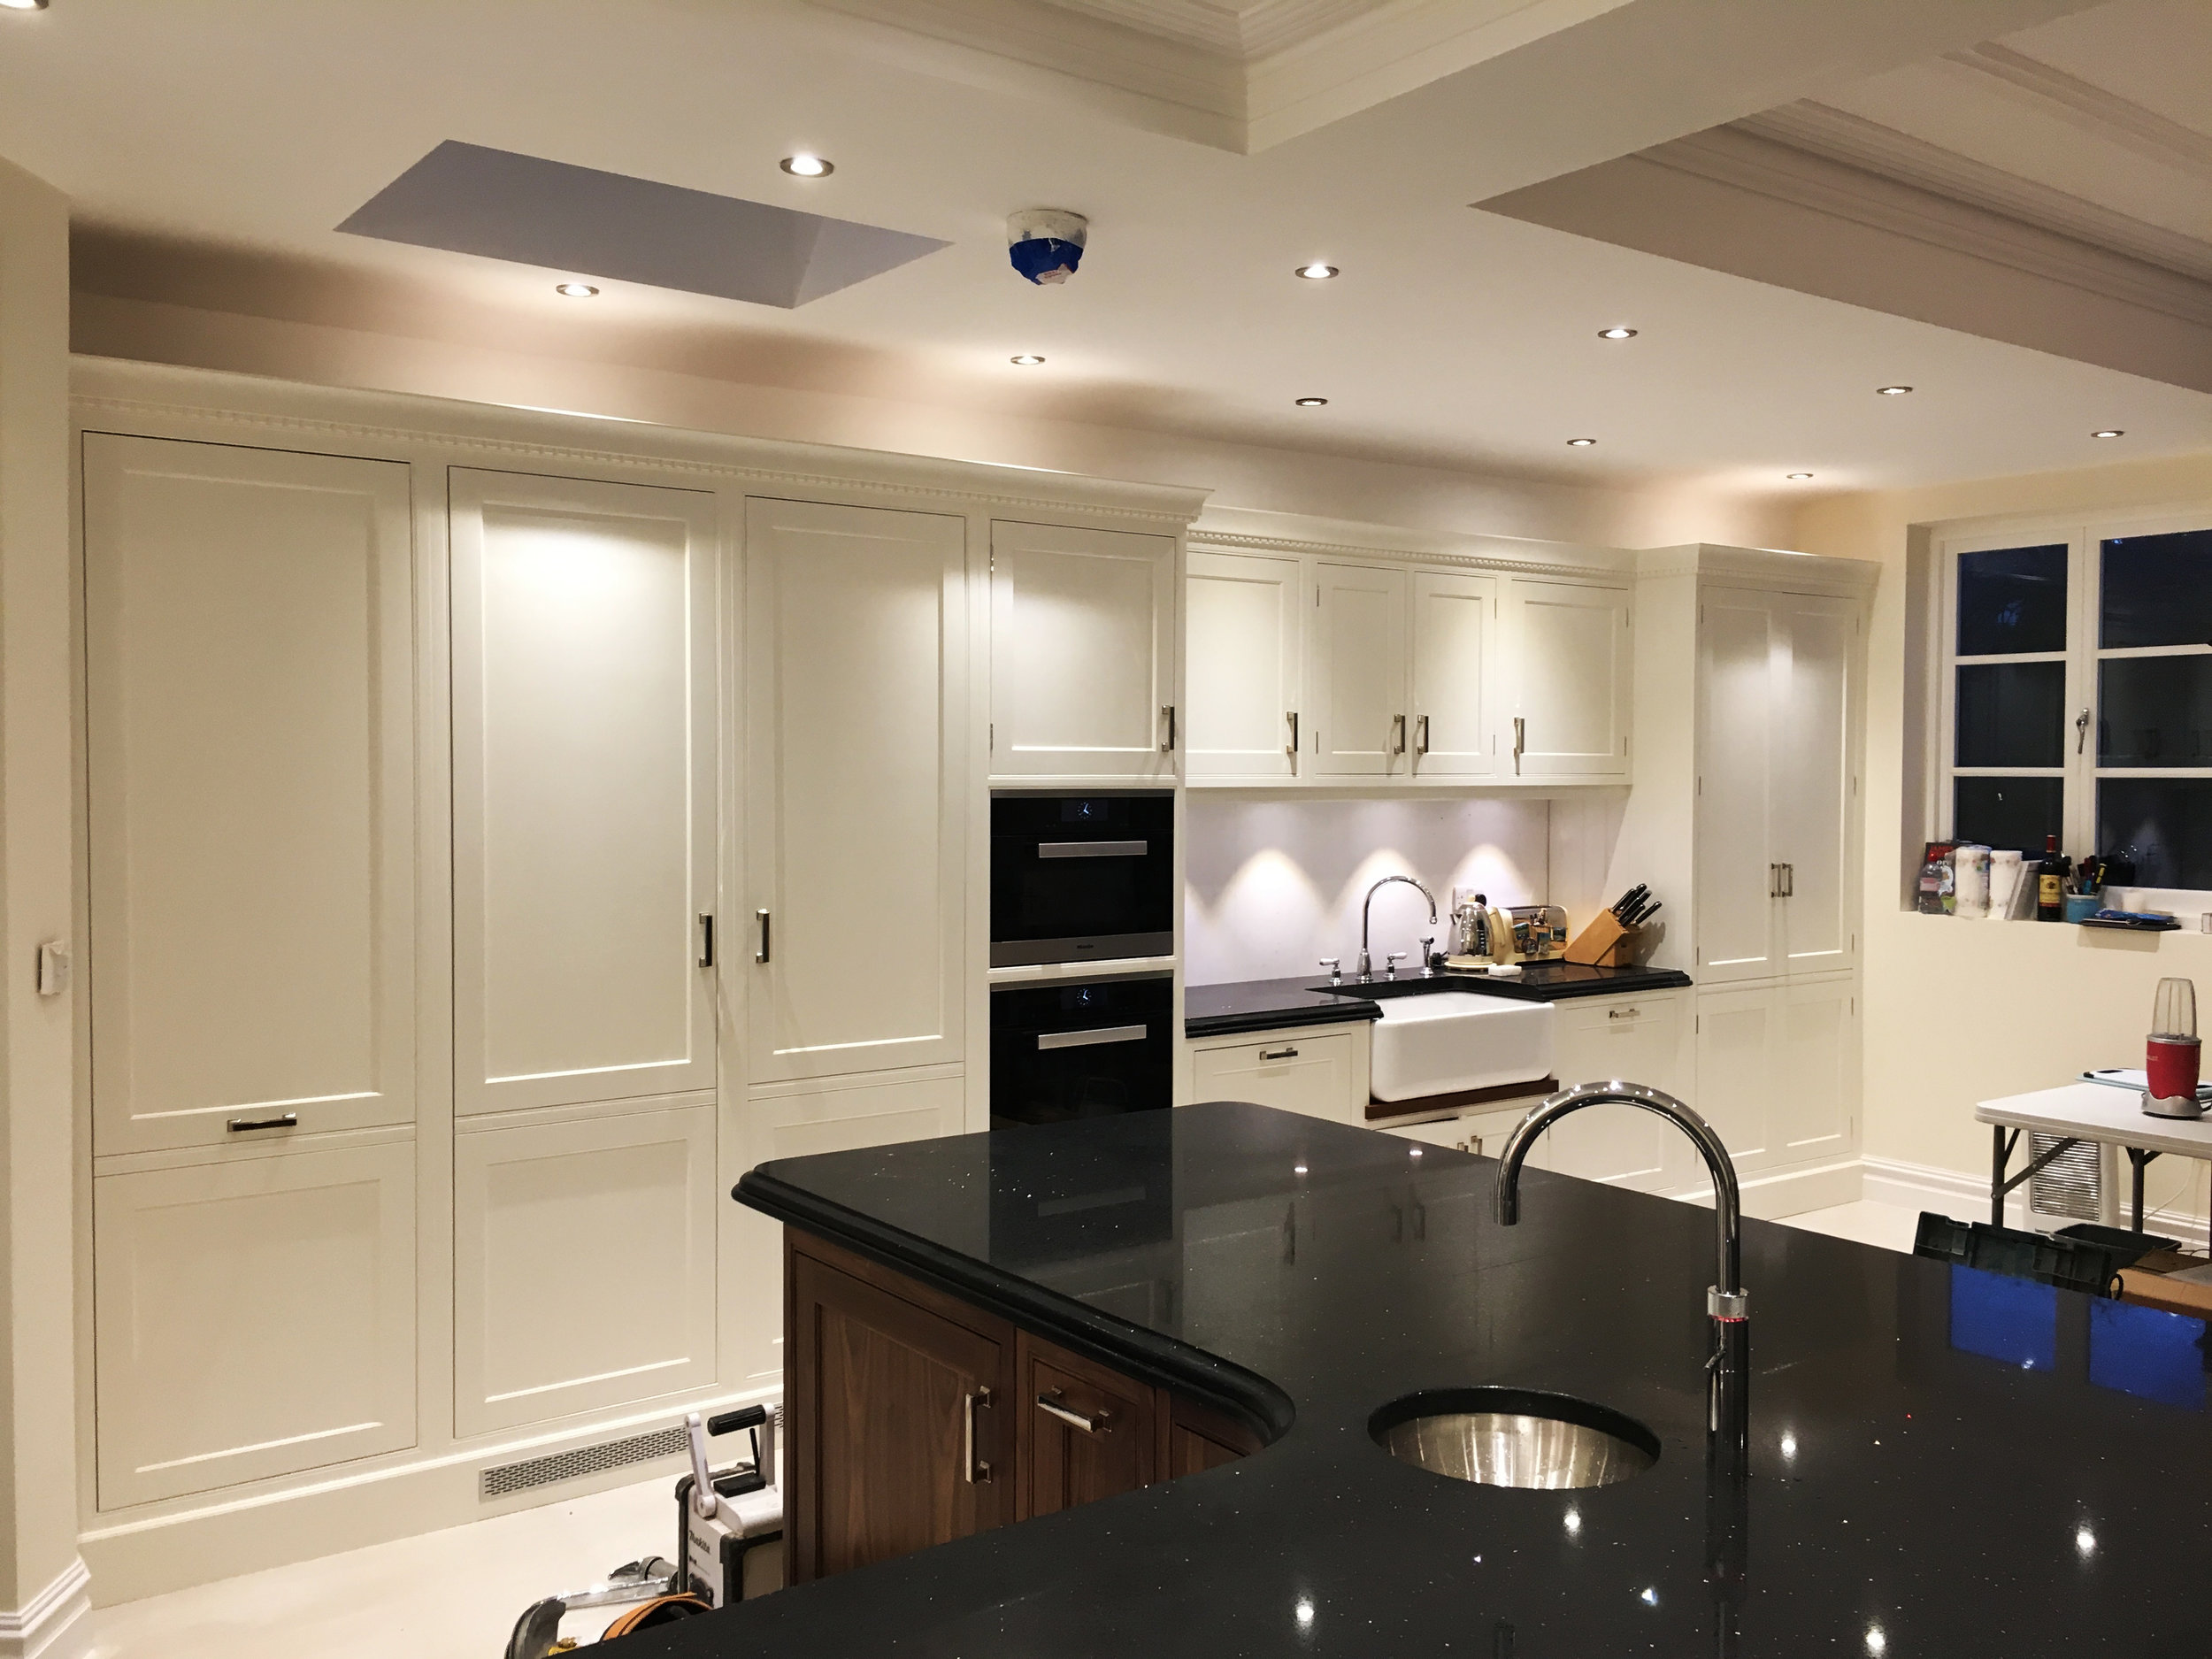 #CharlesYorke #Handpainted #Traditional #Kitchen #PalmersGreen #Farrowandball #Pointing